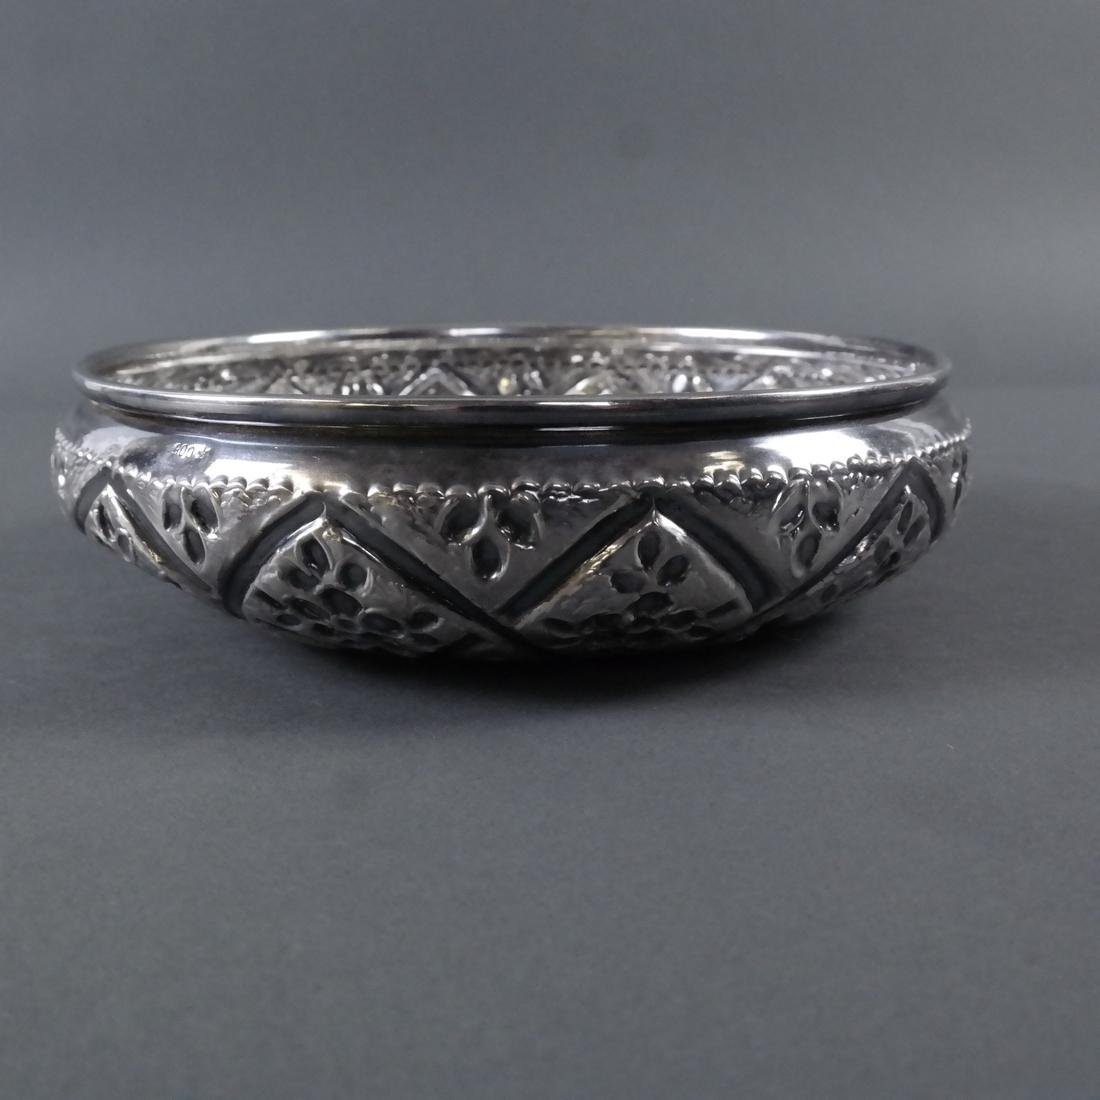 .900 Standard Silver Decorated Bowl - 6